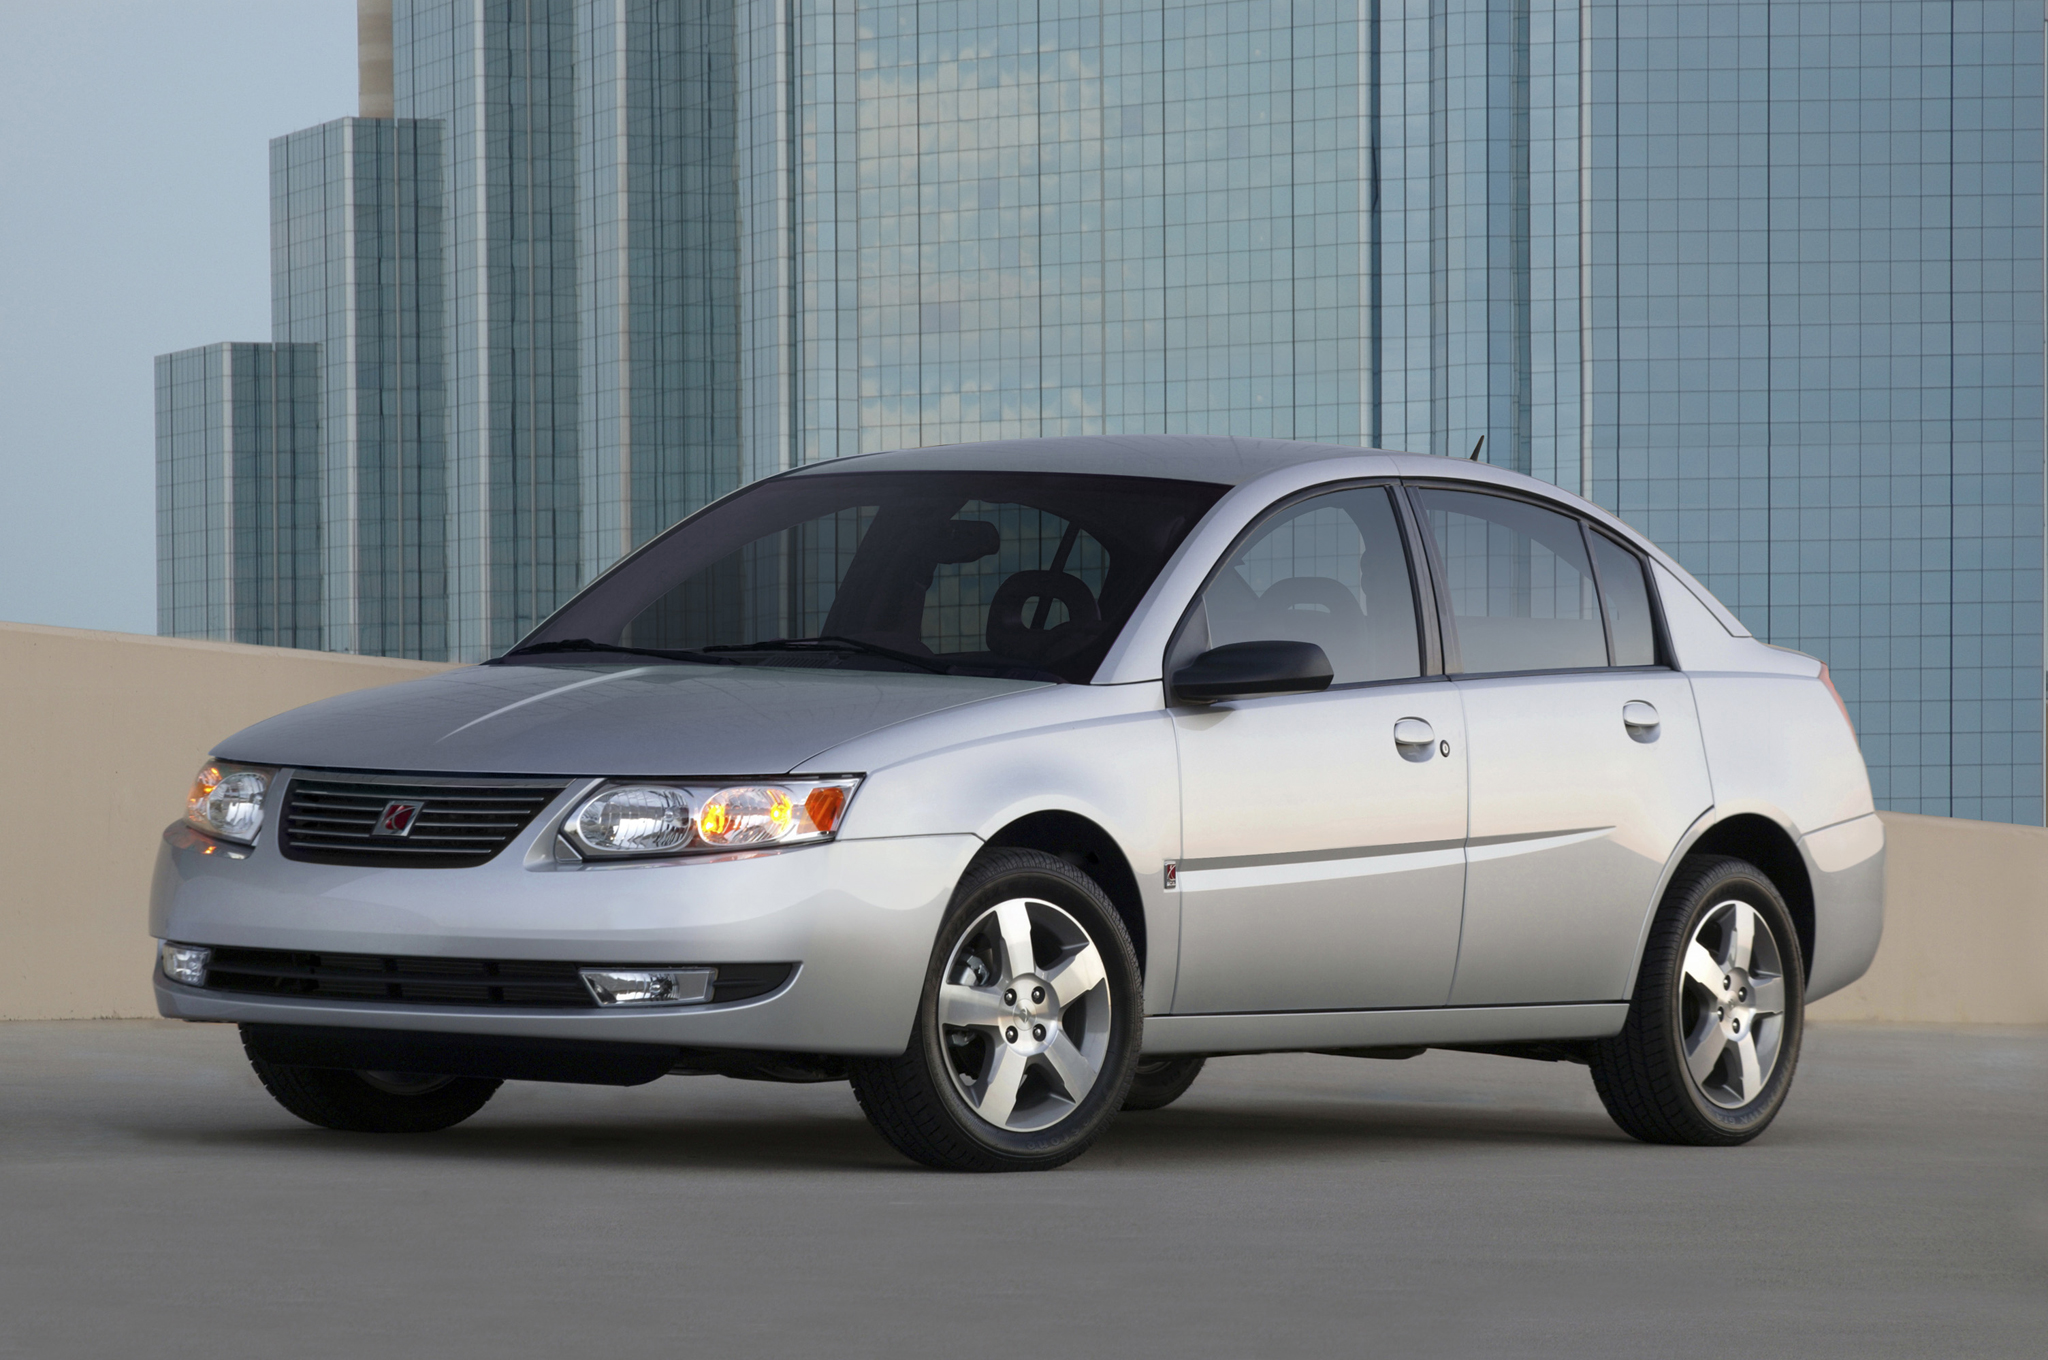 gm expands ignition recall to 1 36 million vehicles including chevrolet hhr saturn ion [ 2048 x 1360 Pixel ]